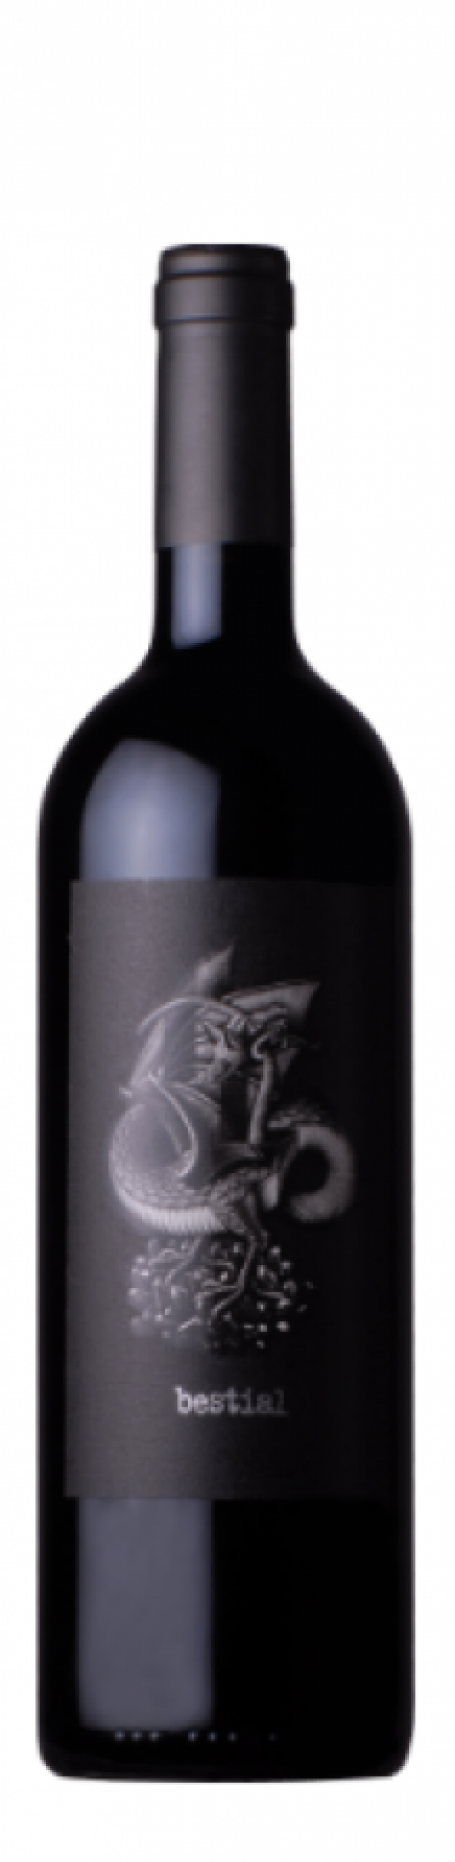 Maal Wines Bestial Malbec 2015 – VISTAFLORES SINGLE VINEYARD